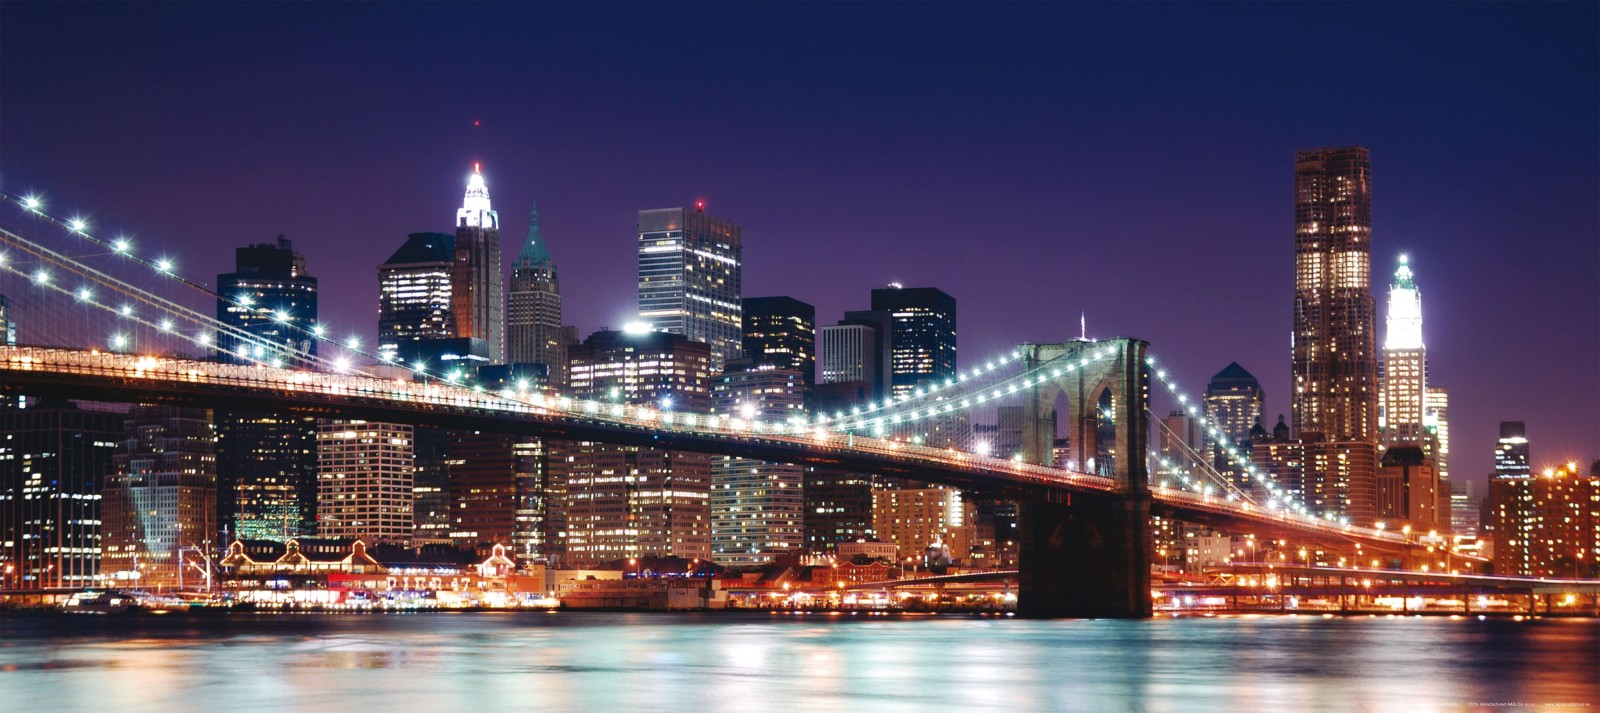 fototapete tapete brooklyn bridge nacht beleuchtet new york nyc foto 90 x 202 cm. Black Bedroom Furniture Sets. Home Design Ideas